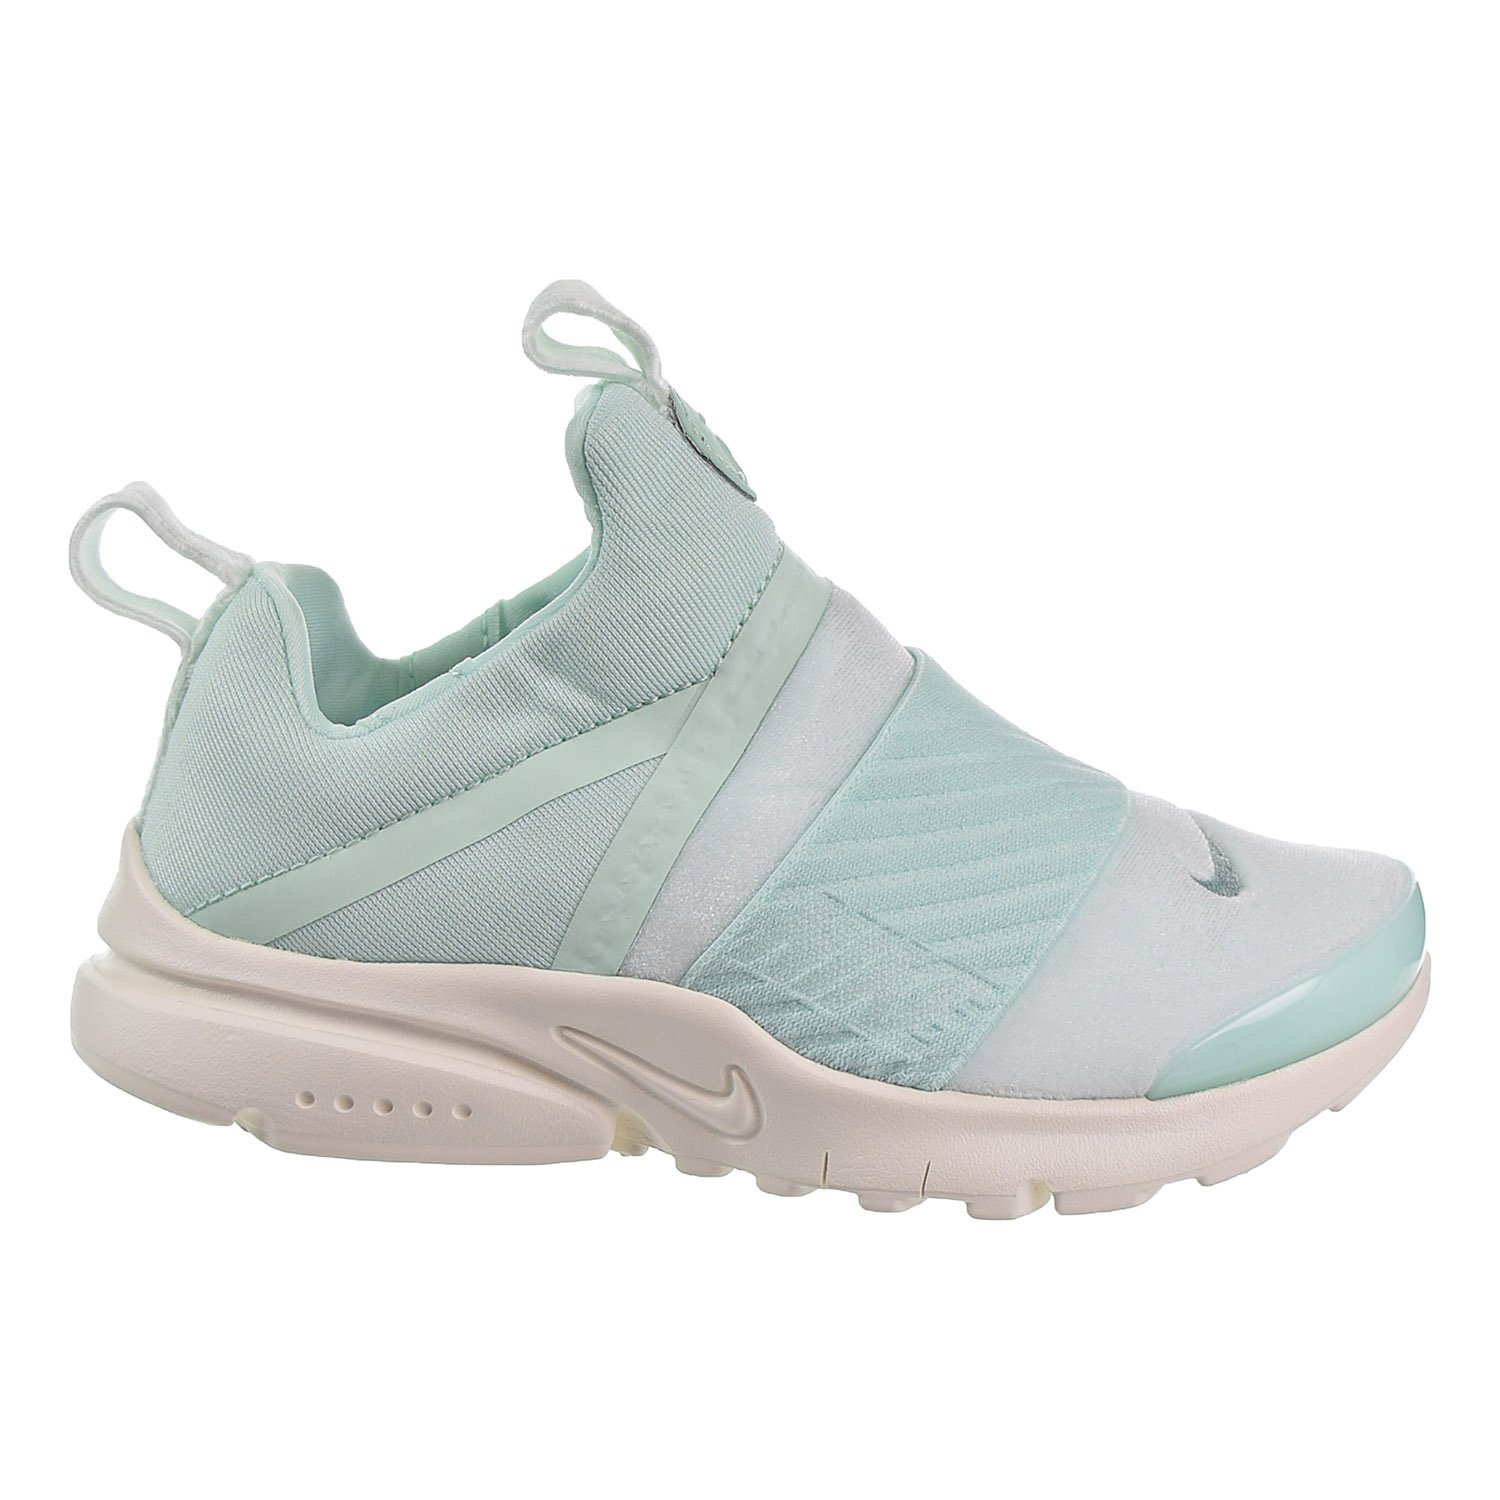 Nike Presto Extreme SE (PS) Preschool Little Kid's Shoes Igloo/Sail aa3515-300 (2 M US)